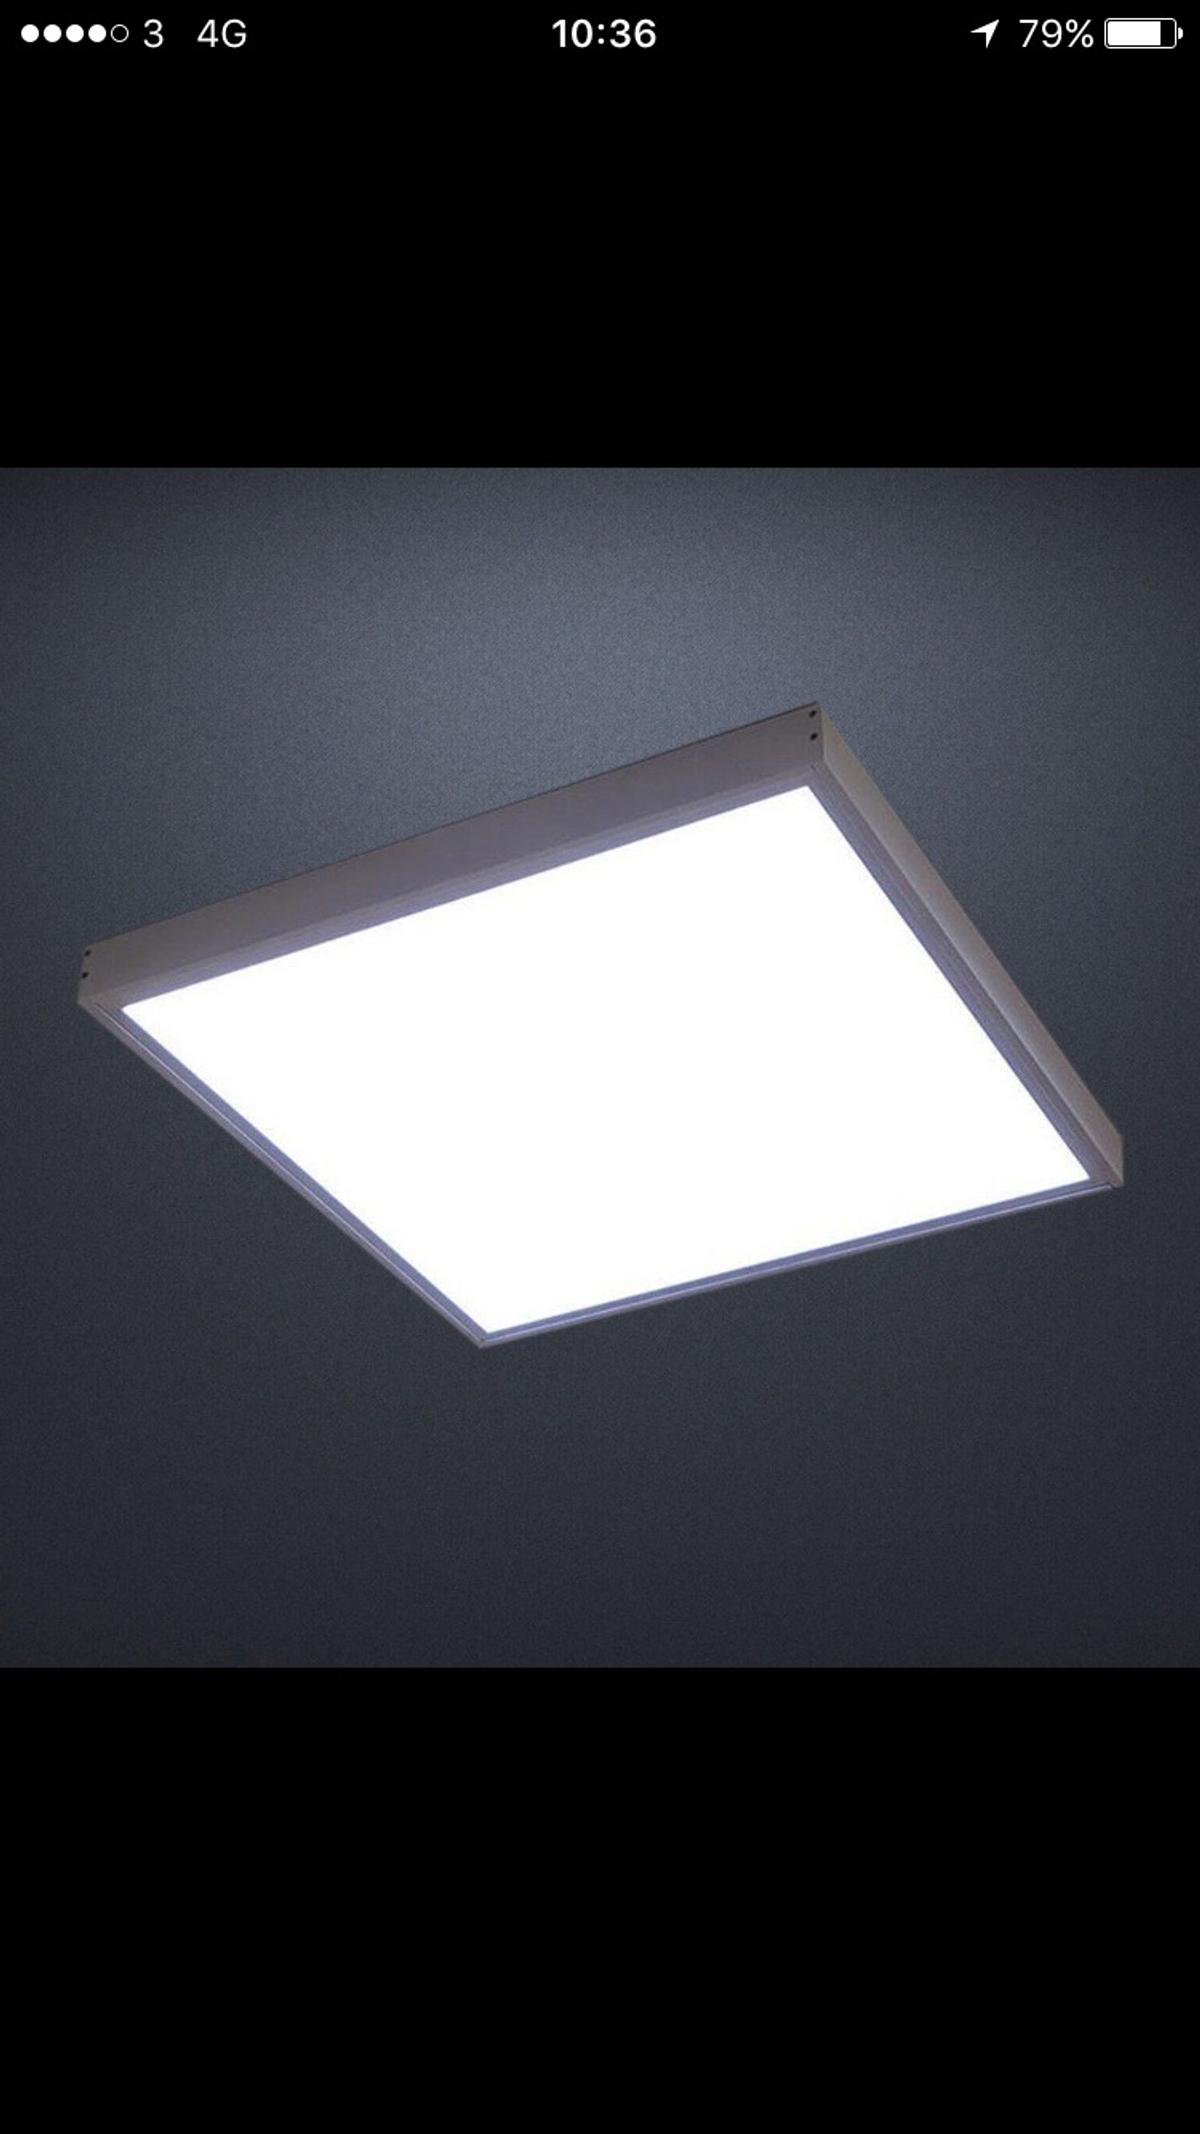 Panel Led Light With Ceiling 48w In Ig11 Barking For